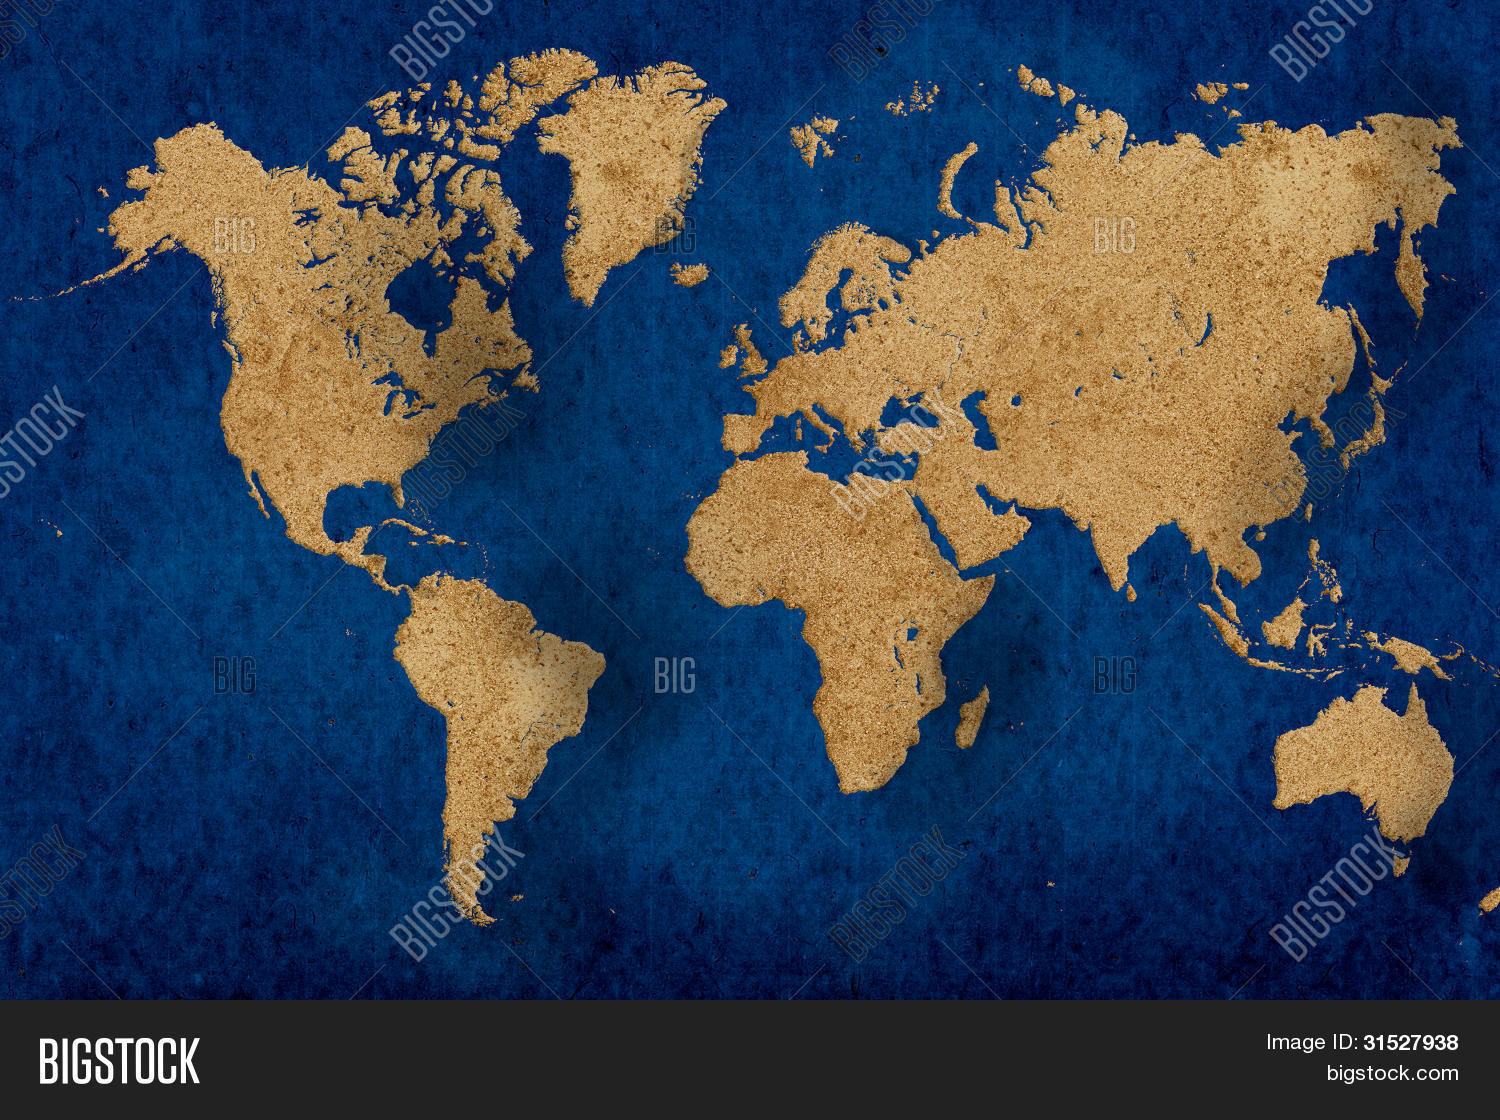 Illustrative World Map Image & Photo (Free Trial) | Bigstock on